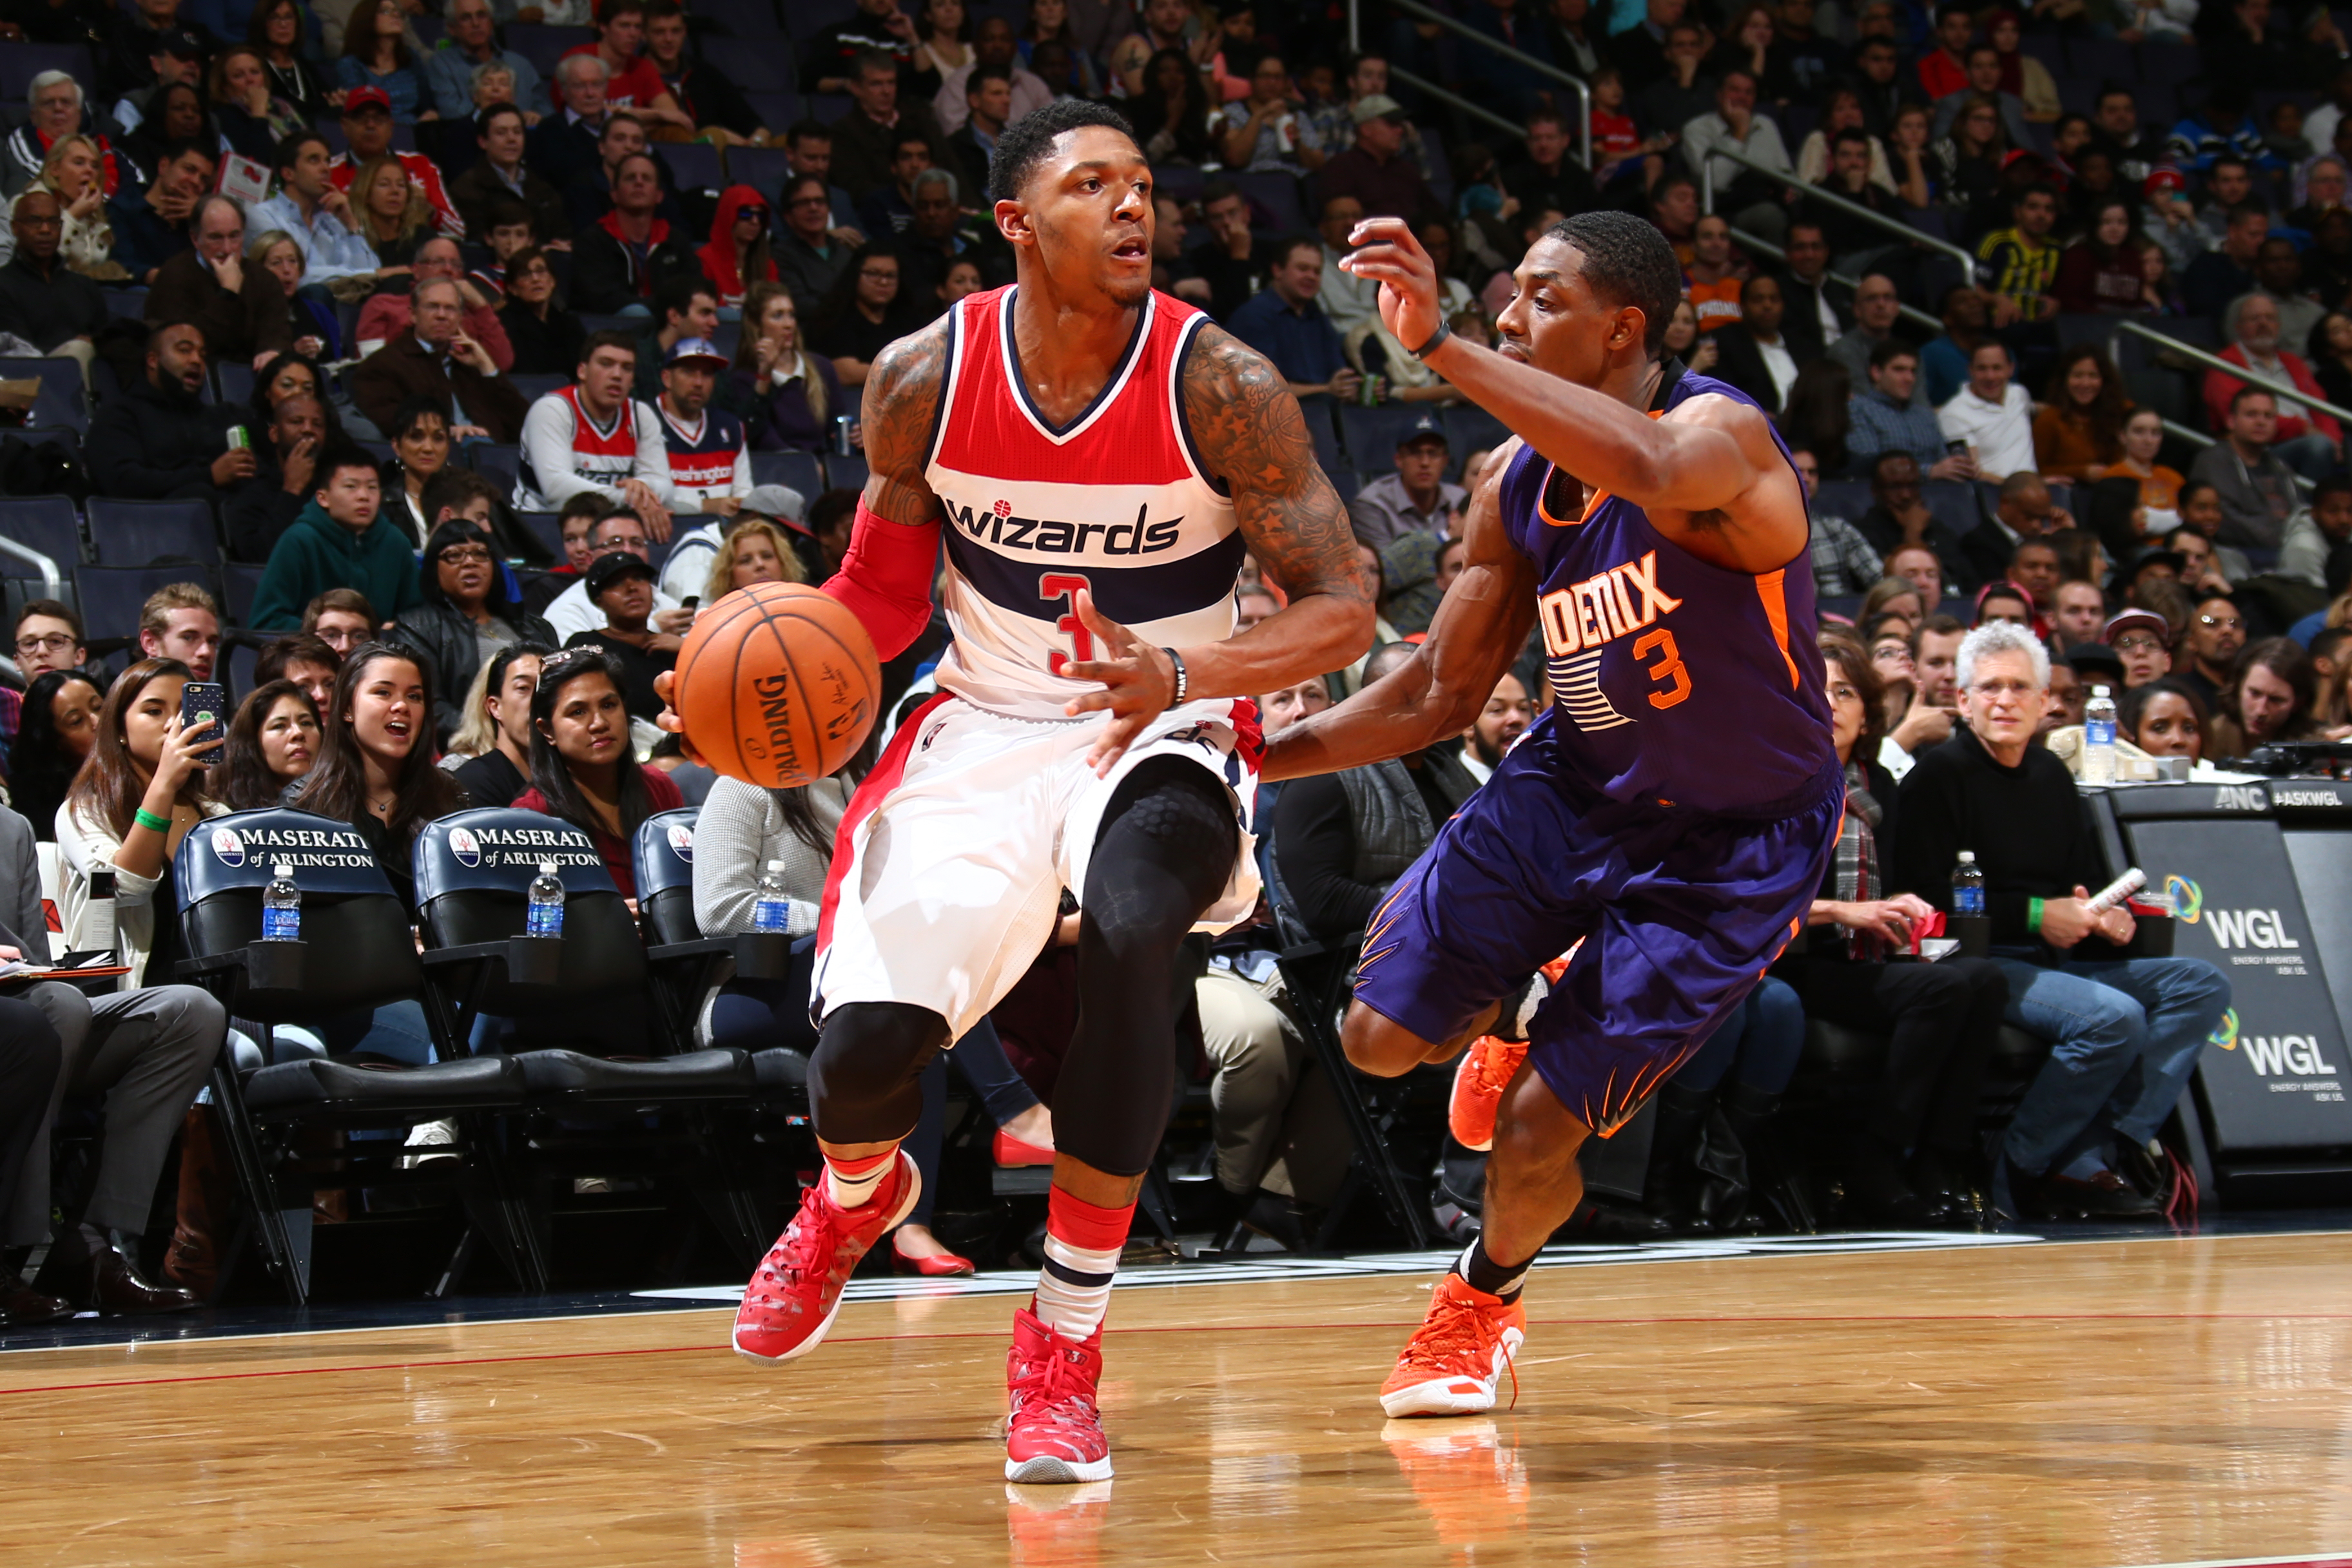 WASHINGTON, DC - DECEMBER 4:  Bradley Beal #3 of the Washington Wizards drives to the basket against Brandon Knight #3 of the Phoenix Suns on December 4, 2015 at Verizon Center in Washington, DC. (Photo by Ned Dishman/NBAE via Getty Images)